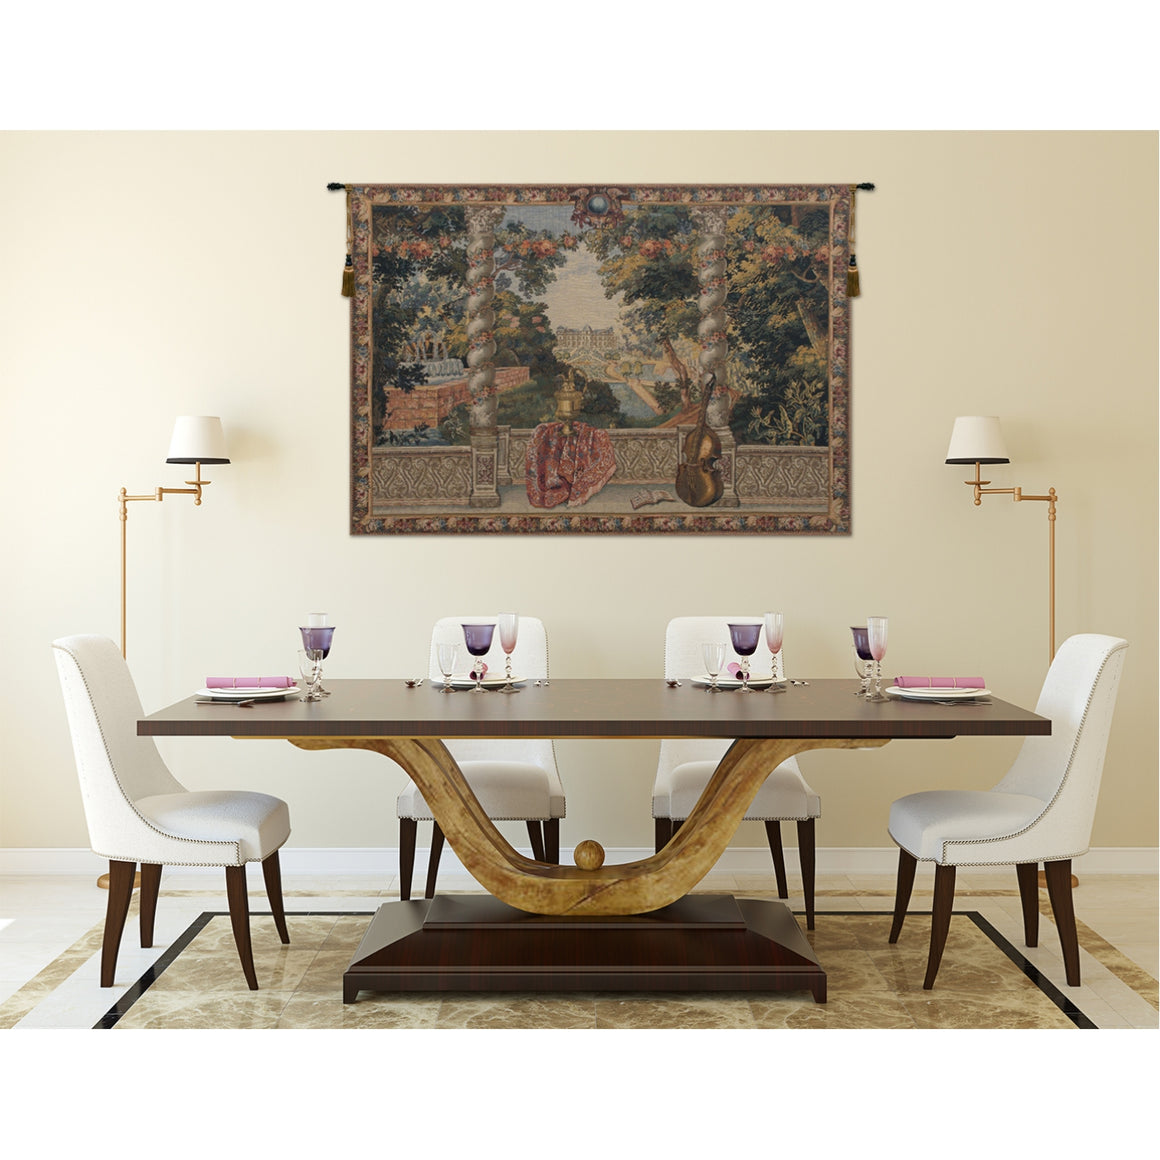 Domaine d'Enghien European Wall Hanging Tapestry